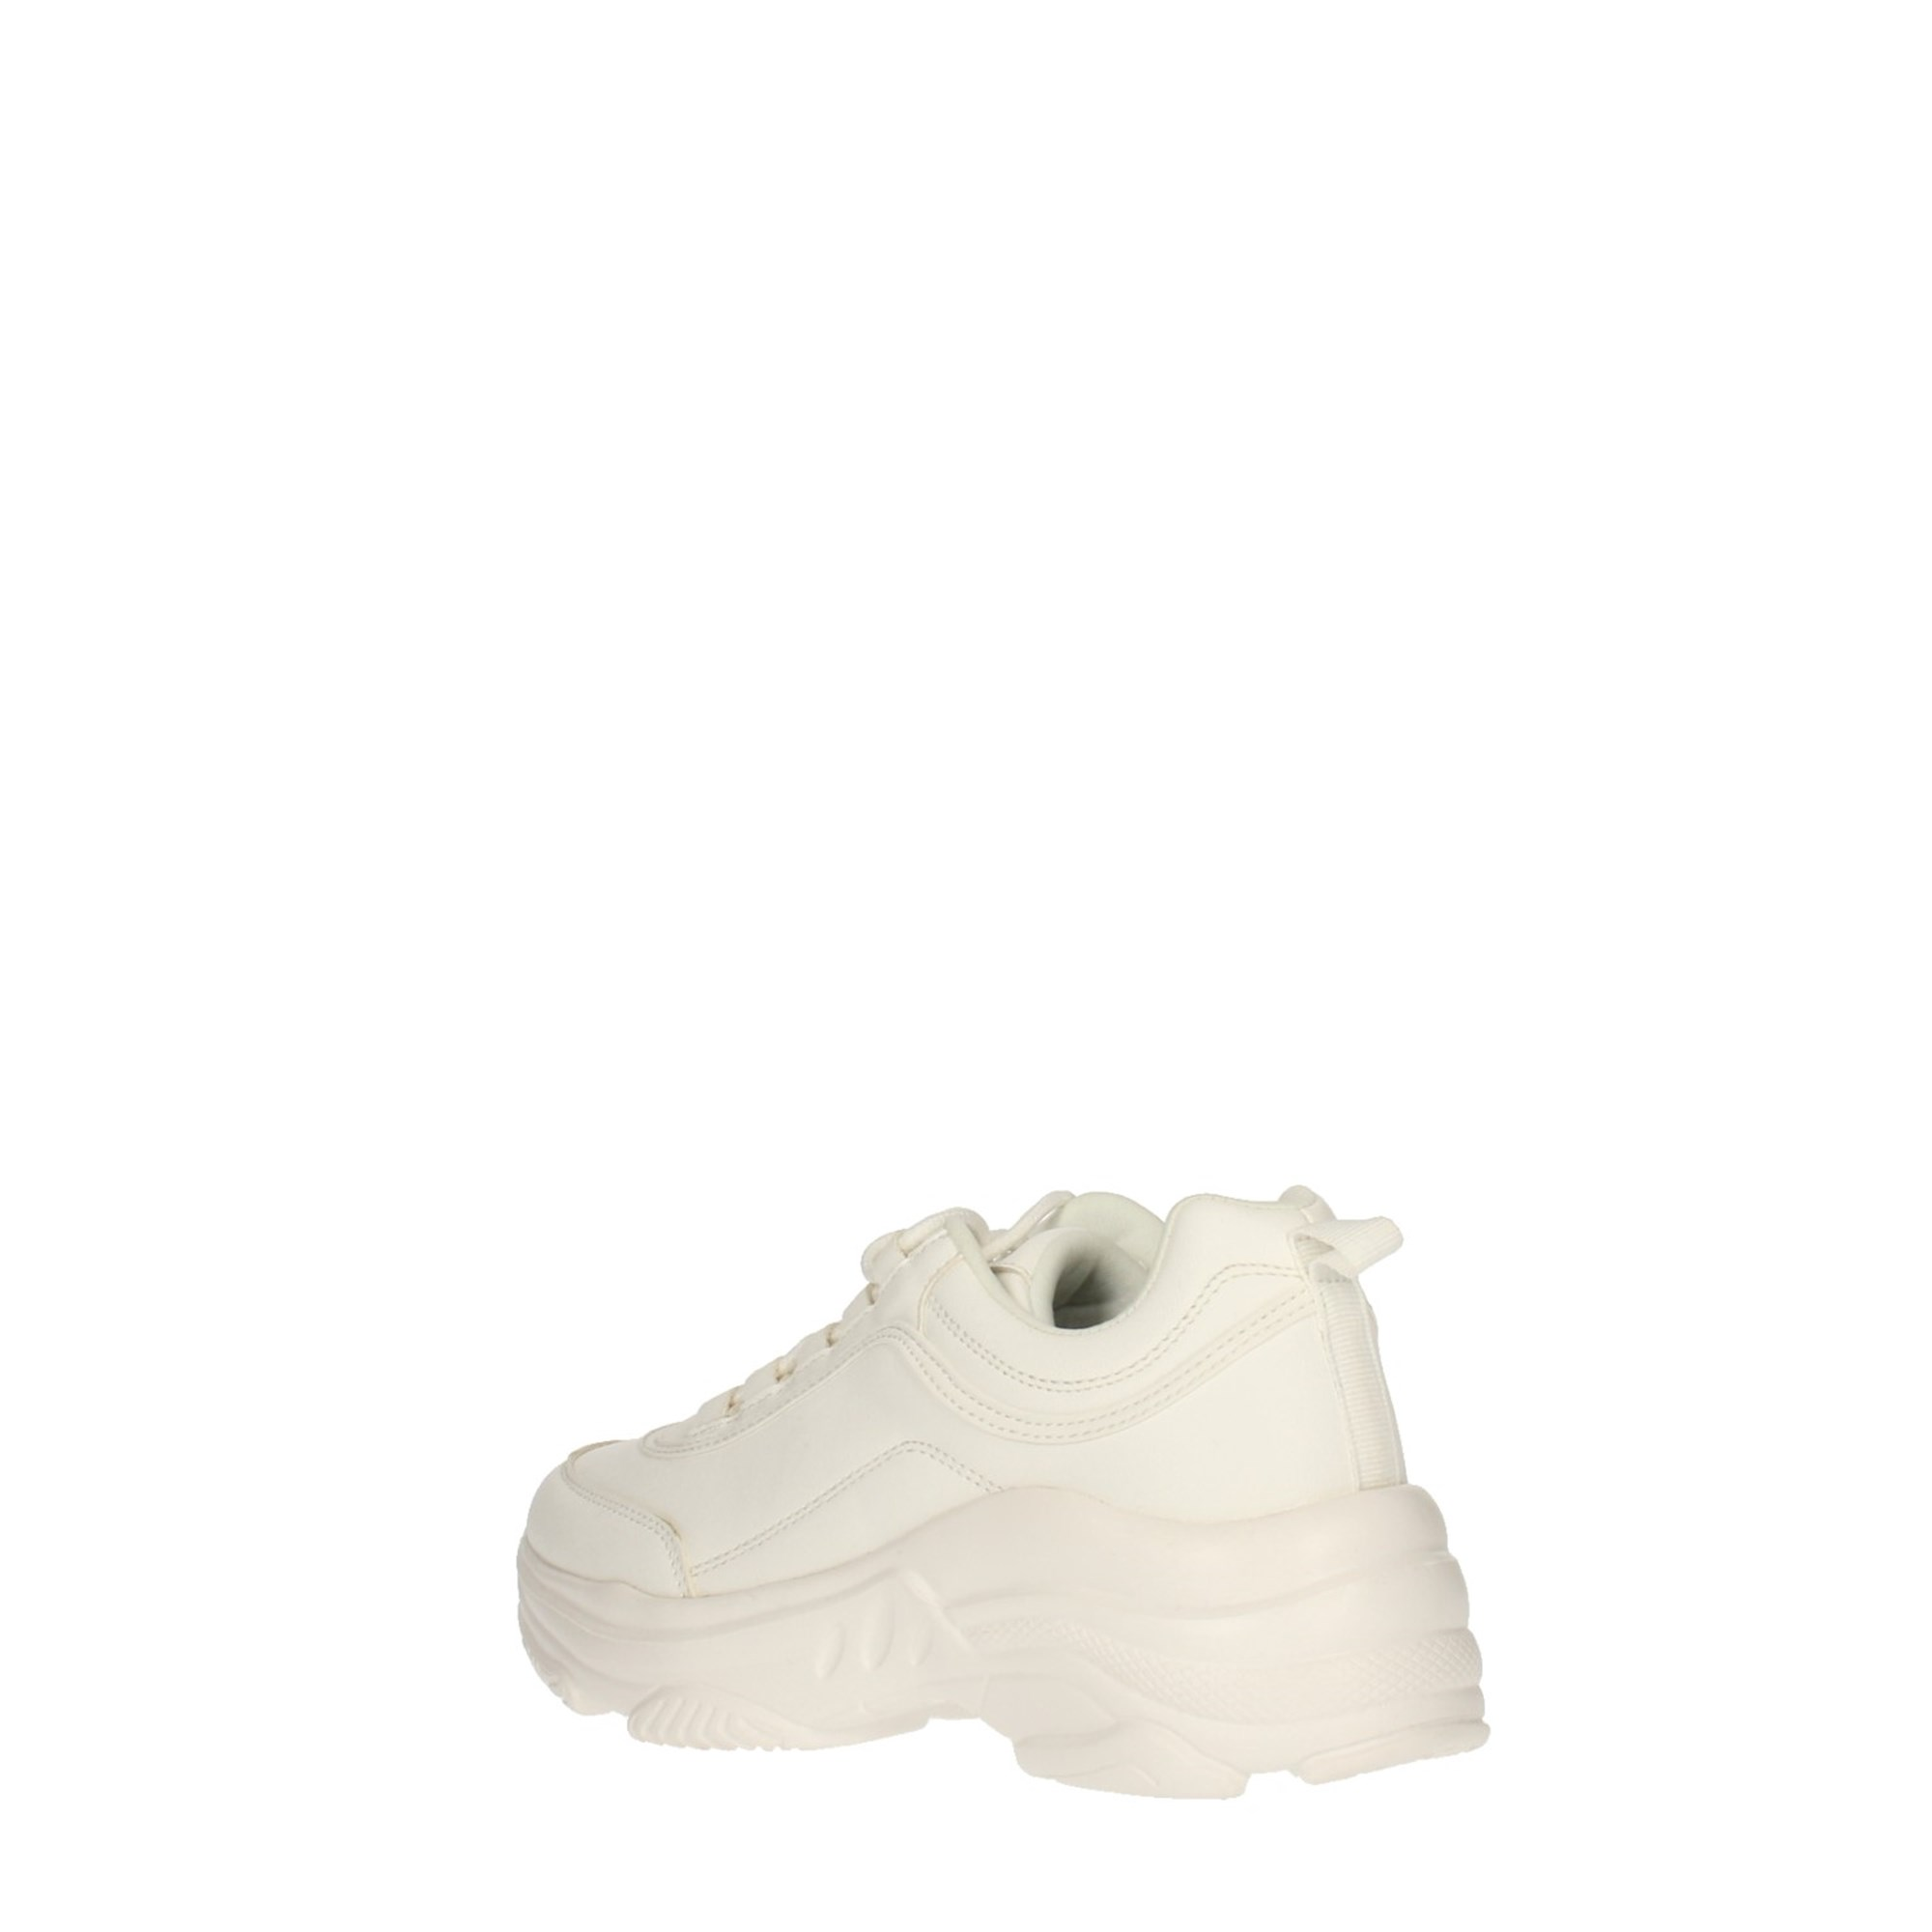 Tata Italia Shoes Woman Sneakers 1900107A